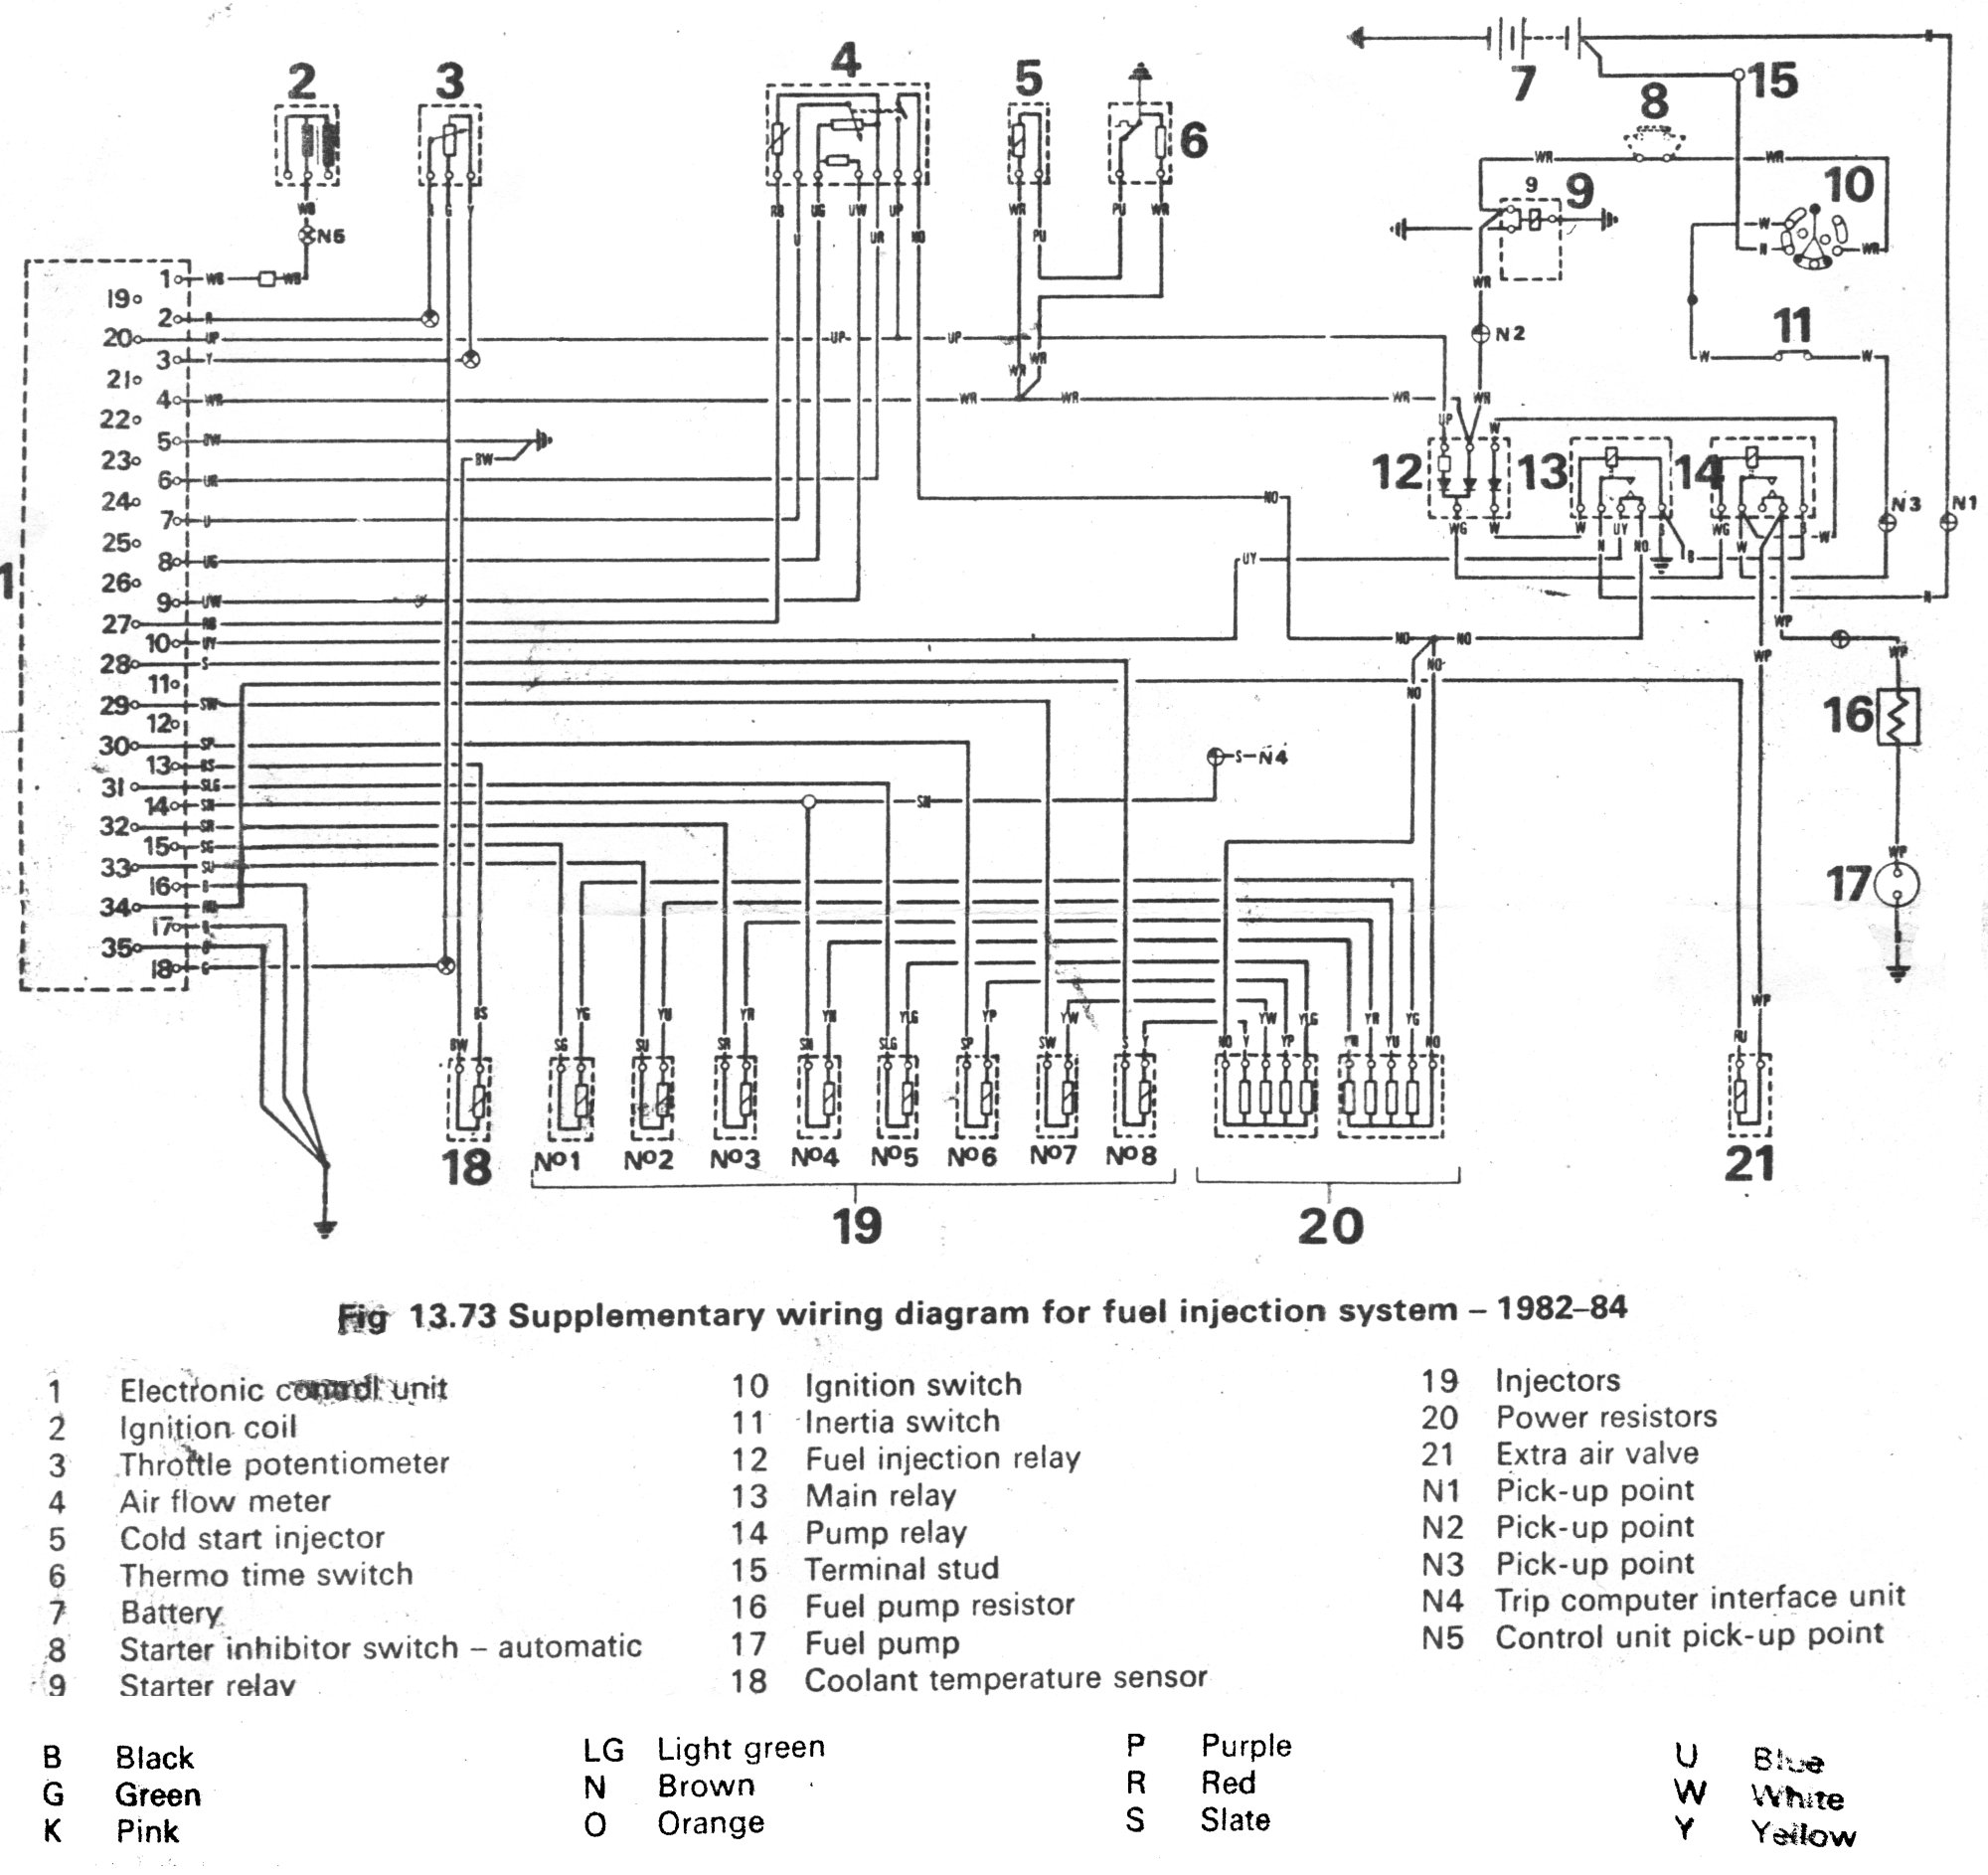 1998 Chevy S10 Fuel Pump Wiring Diagram Get Free Image About Wiring